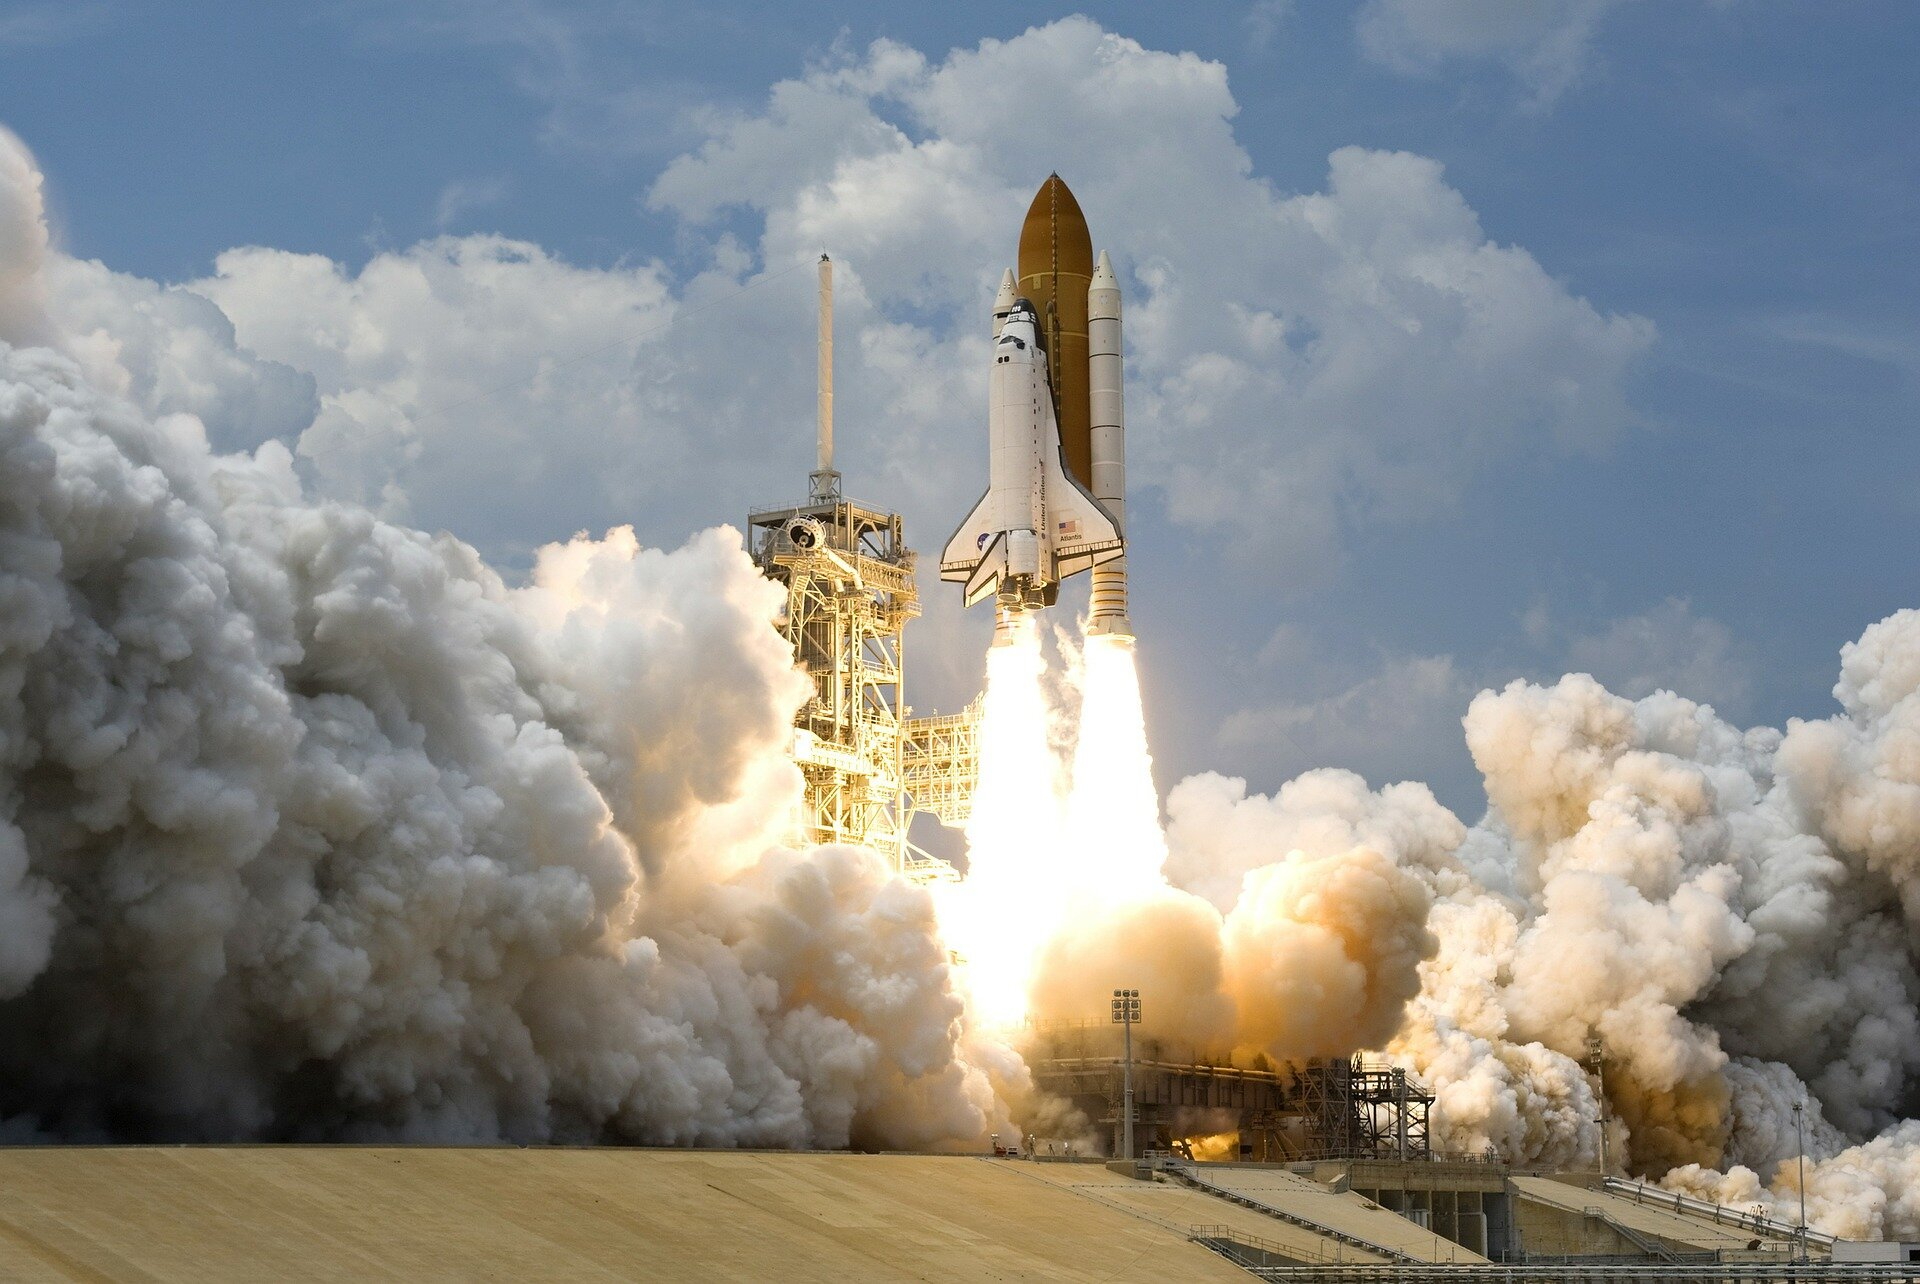 Space Shuttle Atlantis launching from the pad. Bright yellow flames coming out of rocket with big clouds of smoke as shuttle lifts off.